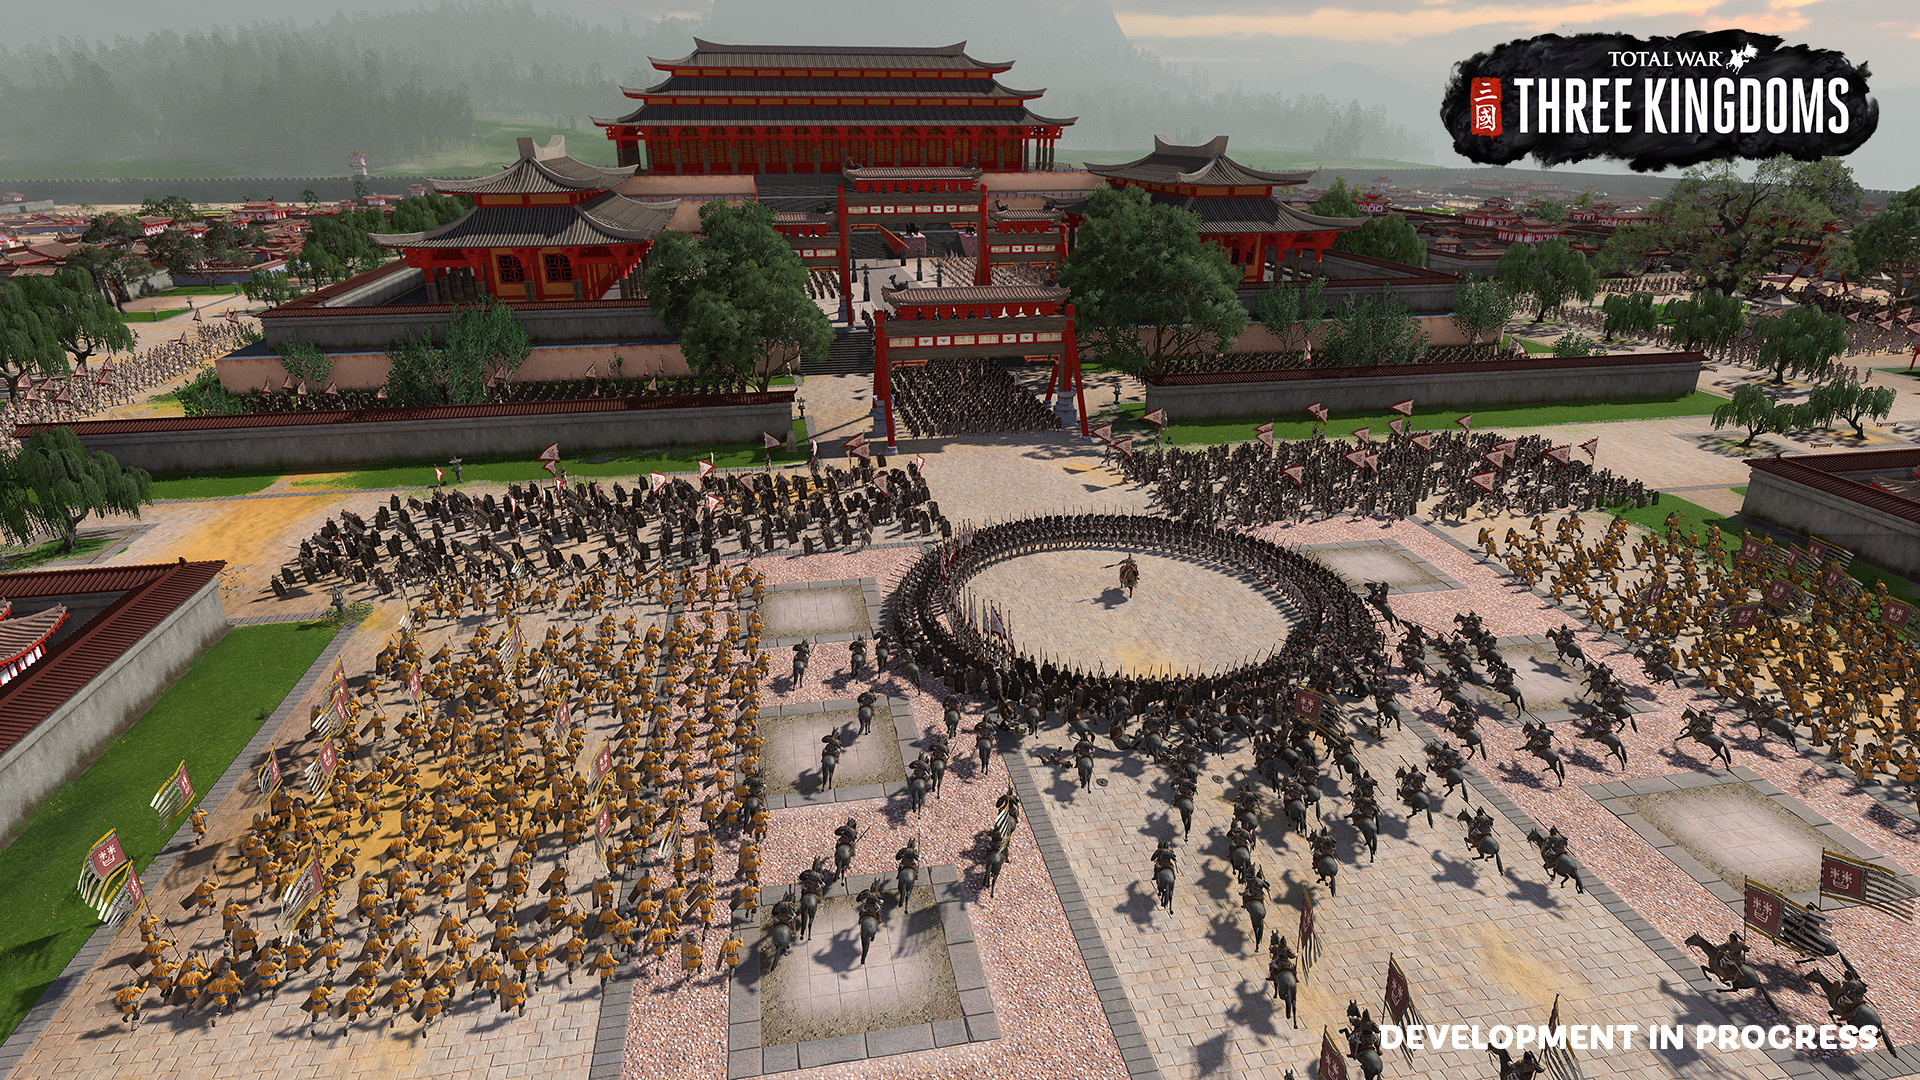 Total War: THREE KINGDOMS for PC Reviews - OpenCritic